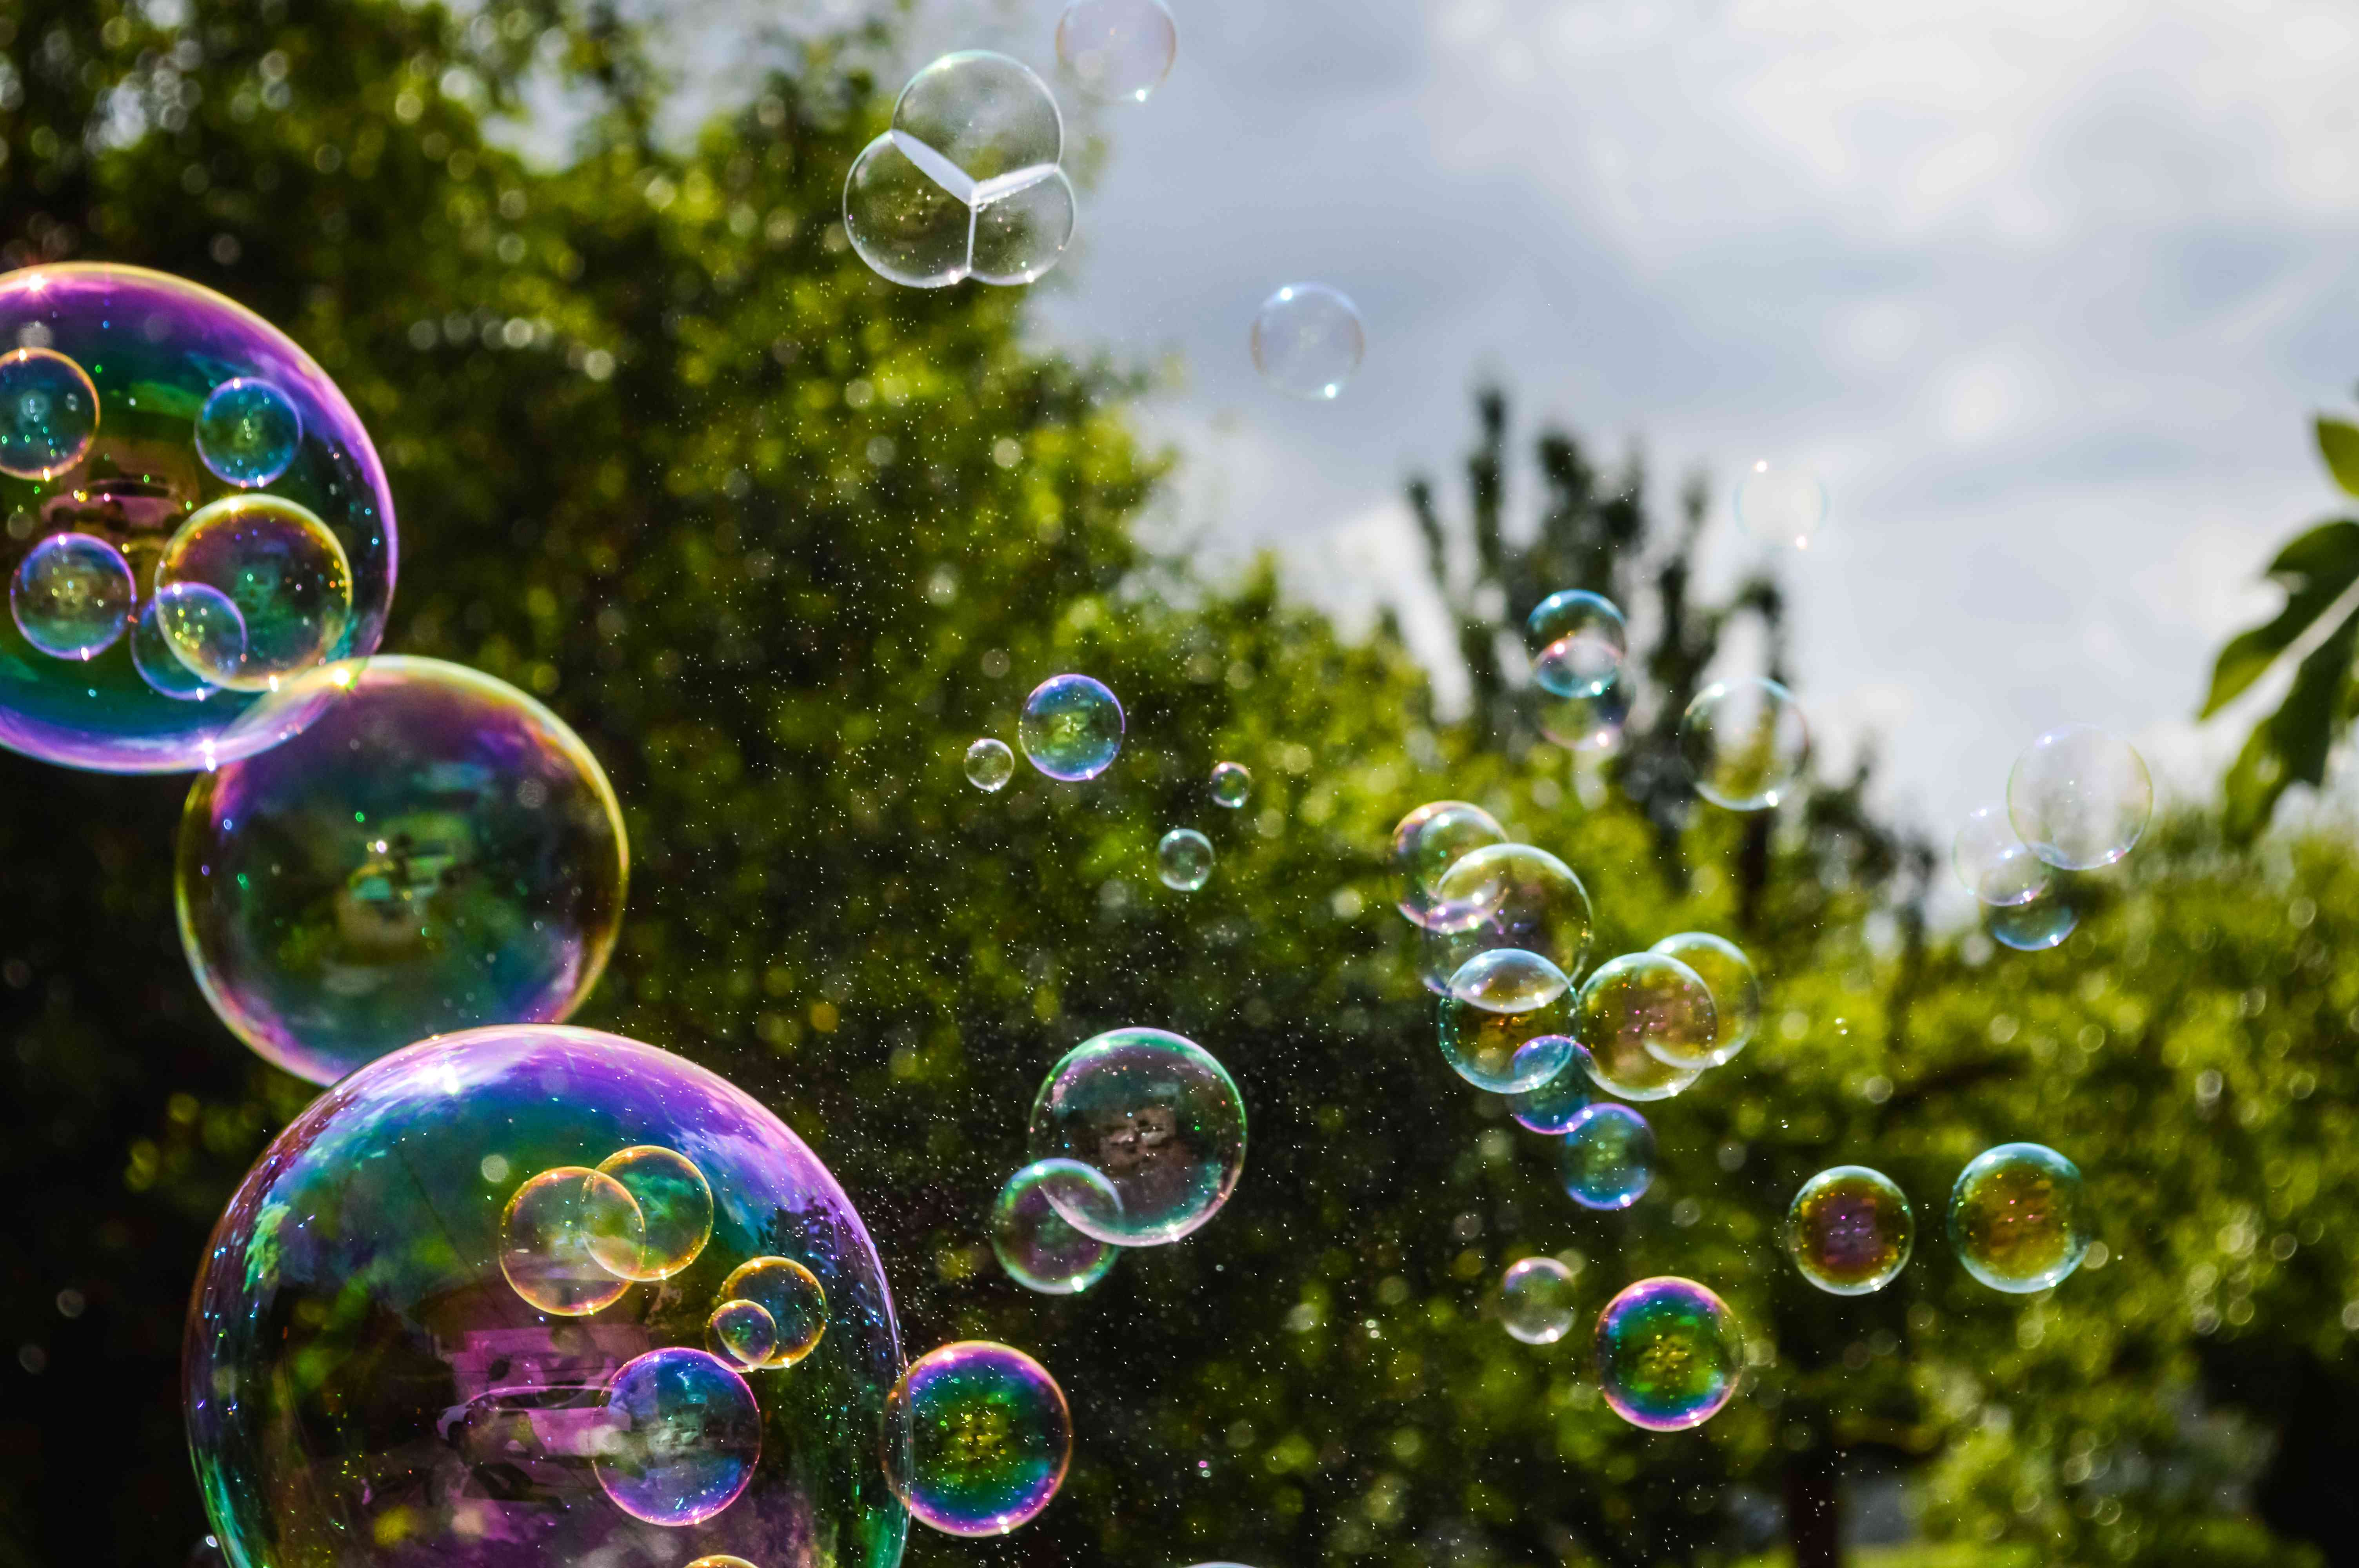 soap bubbles floating on green garden background